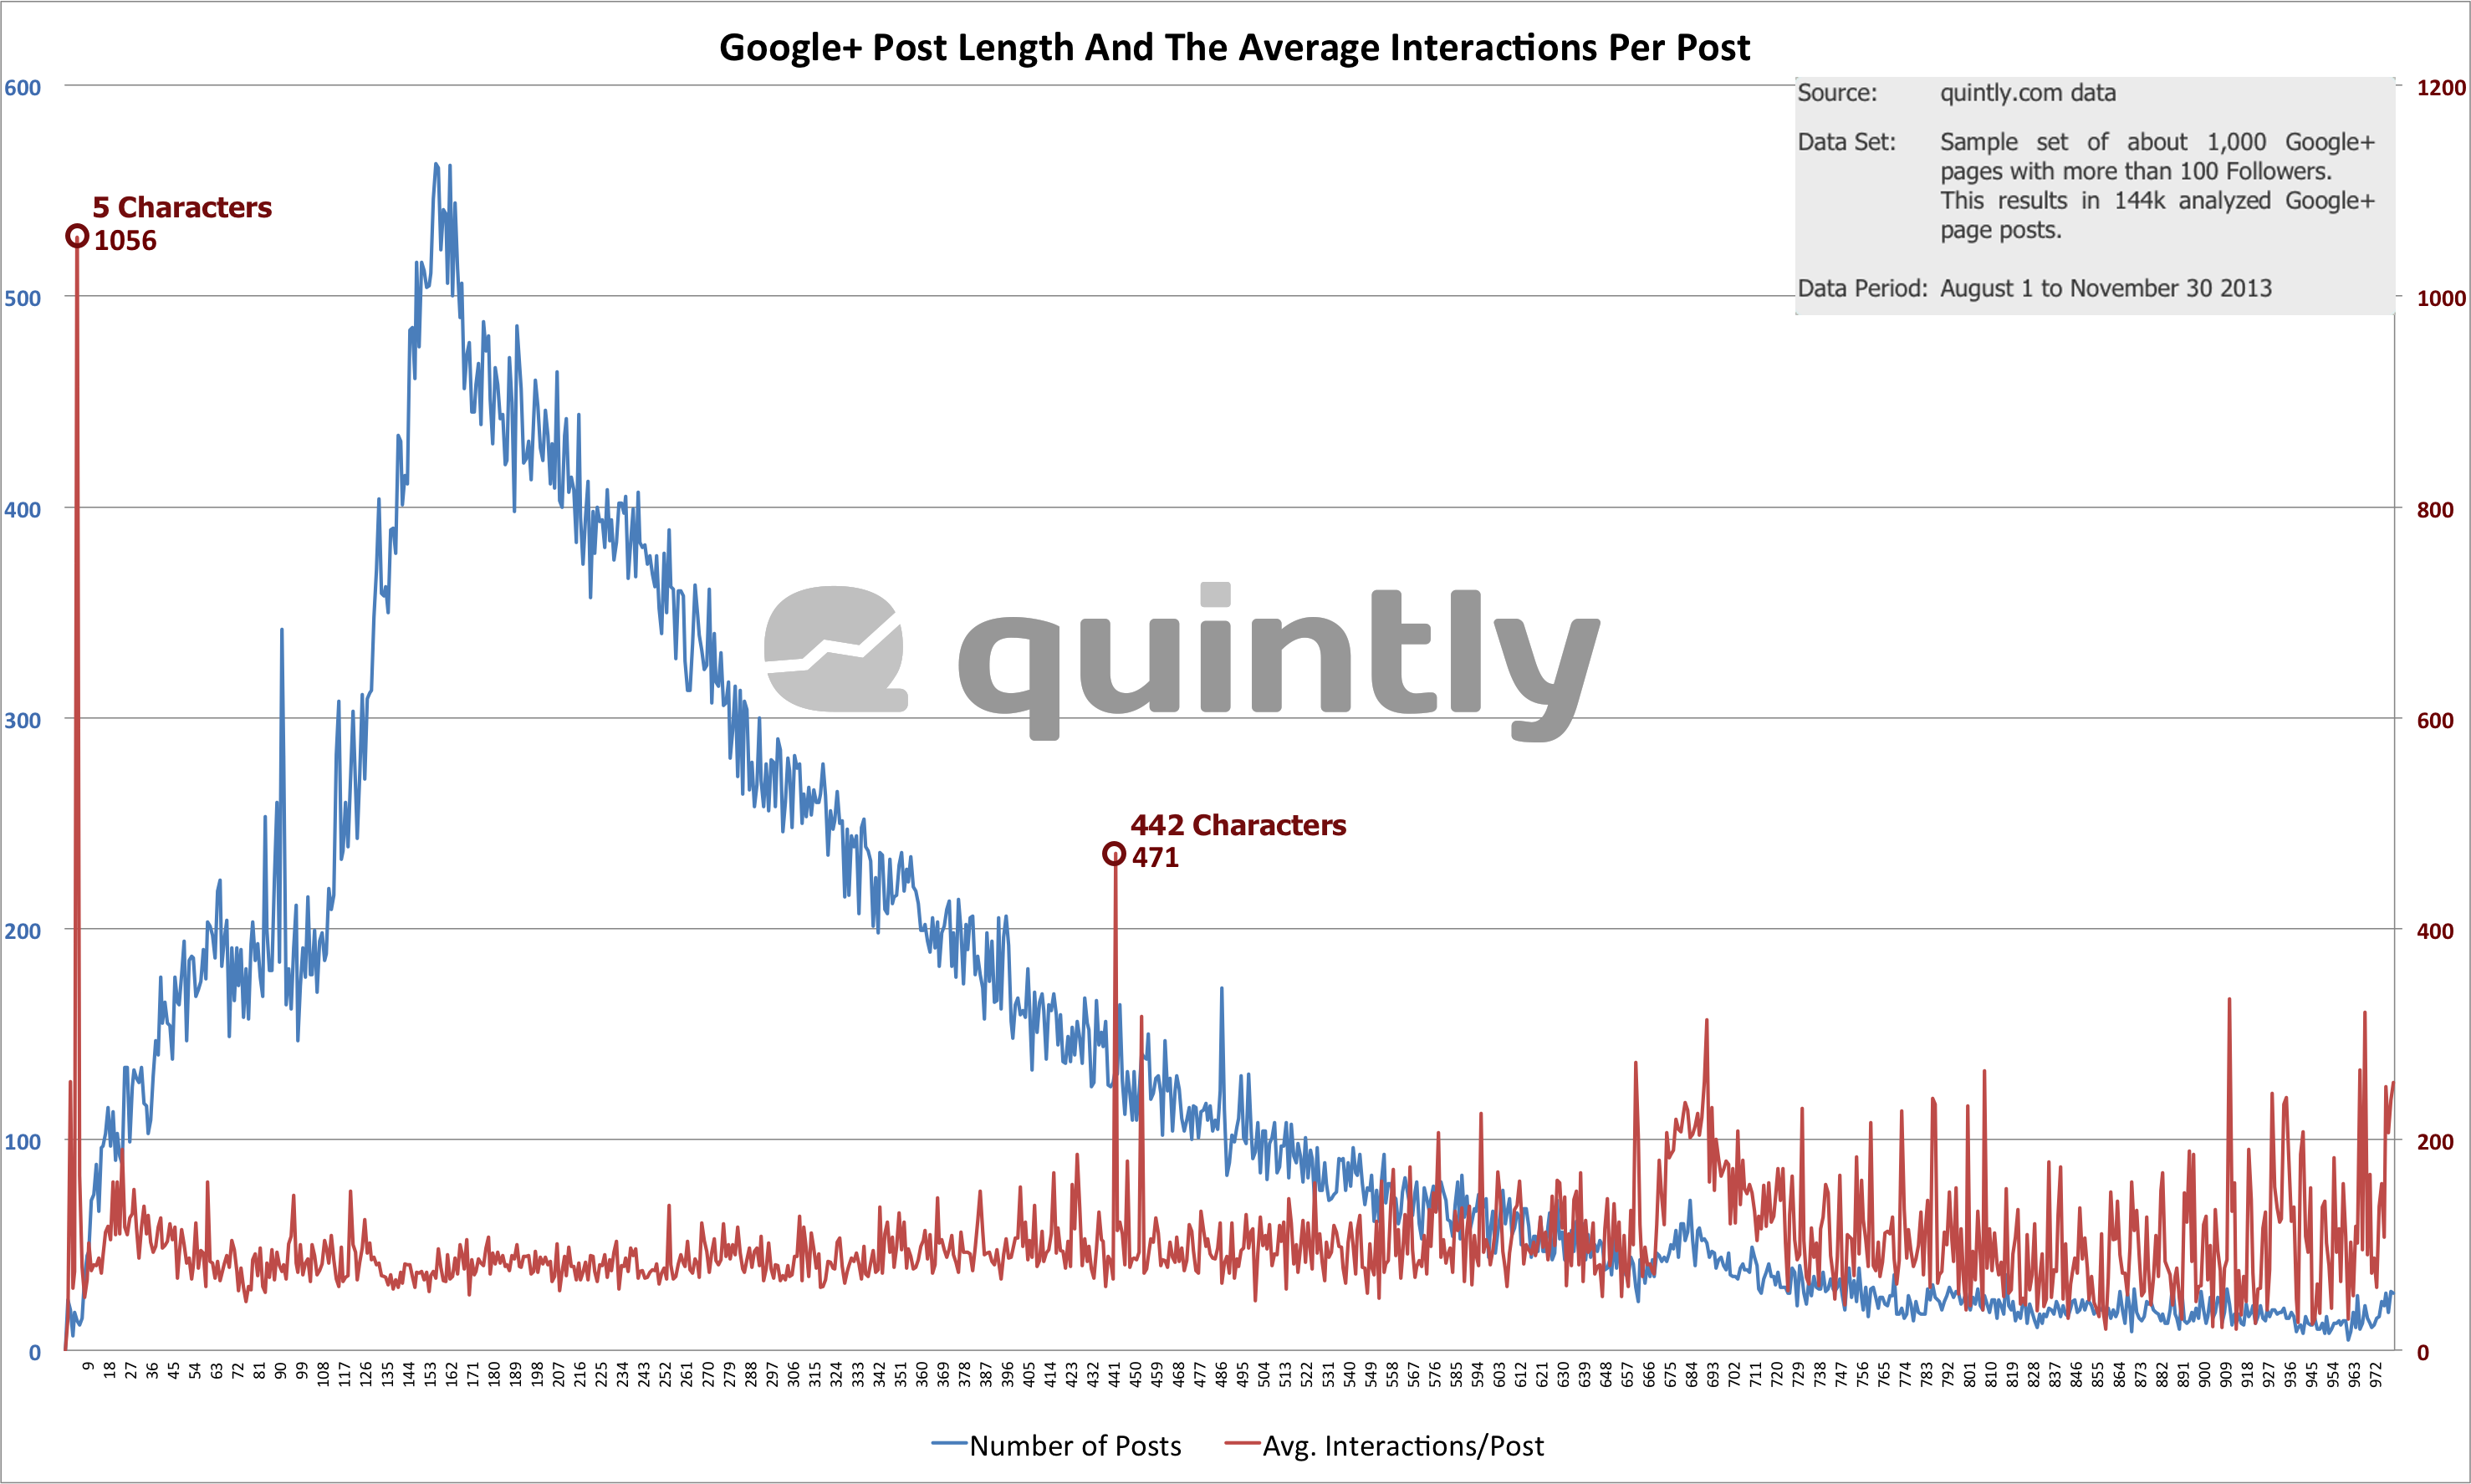 Google+ Post Length And The Average Interactions Per Post